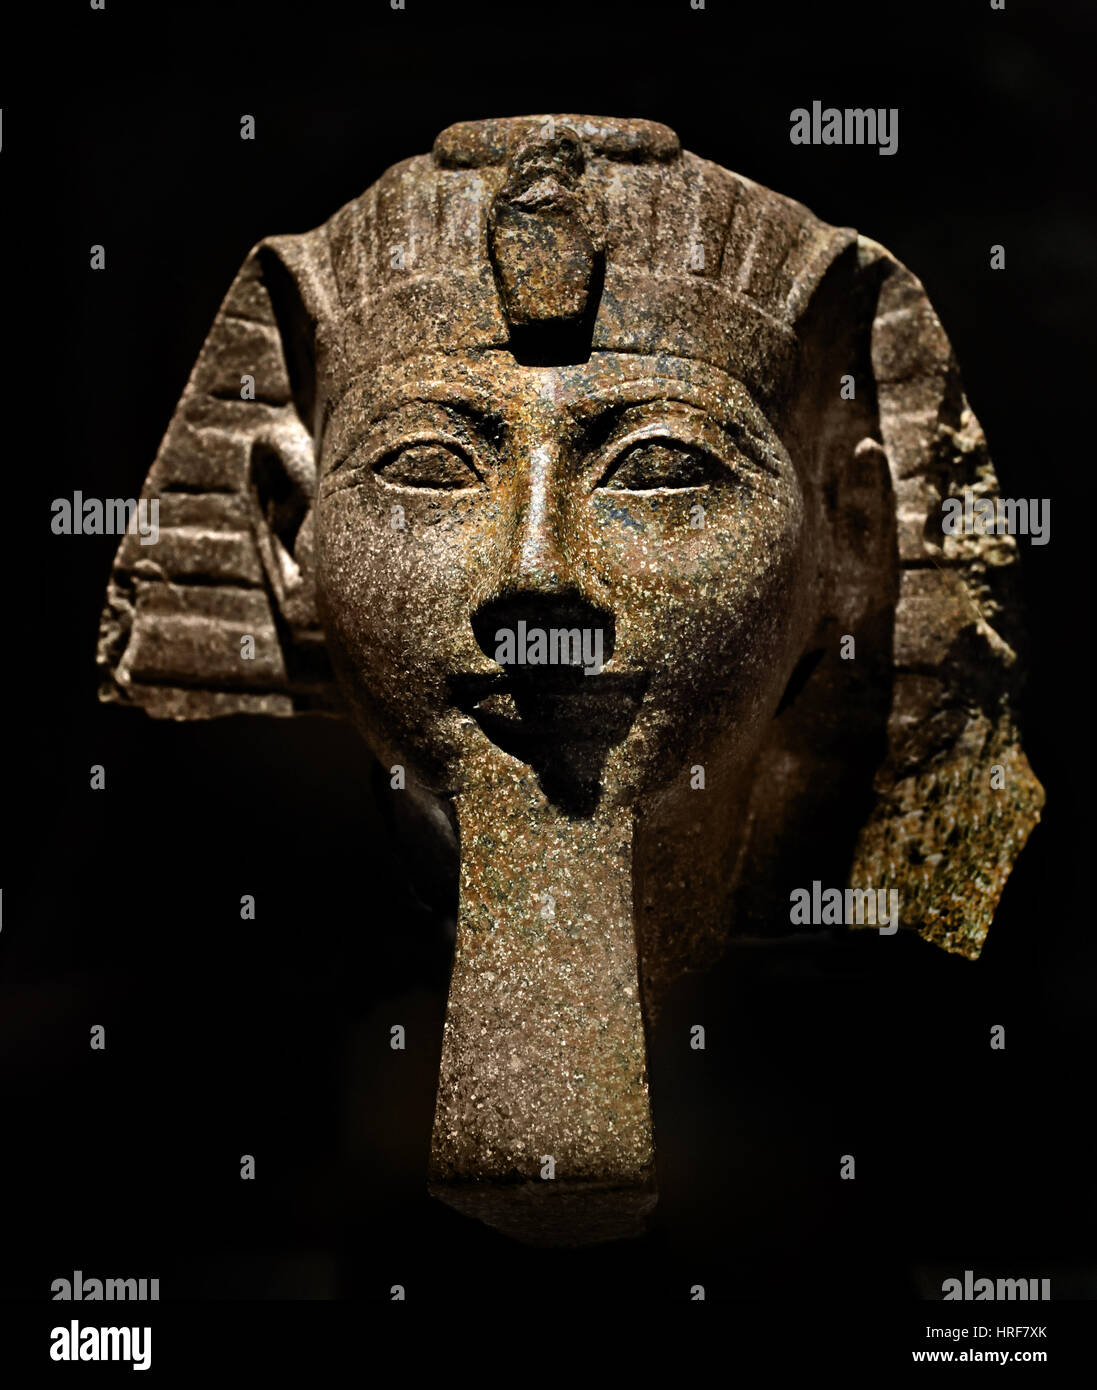 Hatshepsut - Hatchepsut; - 1507–1458 BC) was the fifth pharaoh of the Eighteenth Dynasty of Egypt. - Stock Image